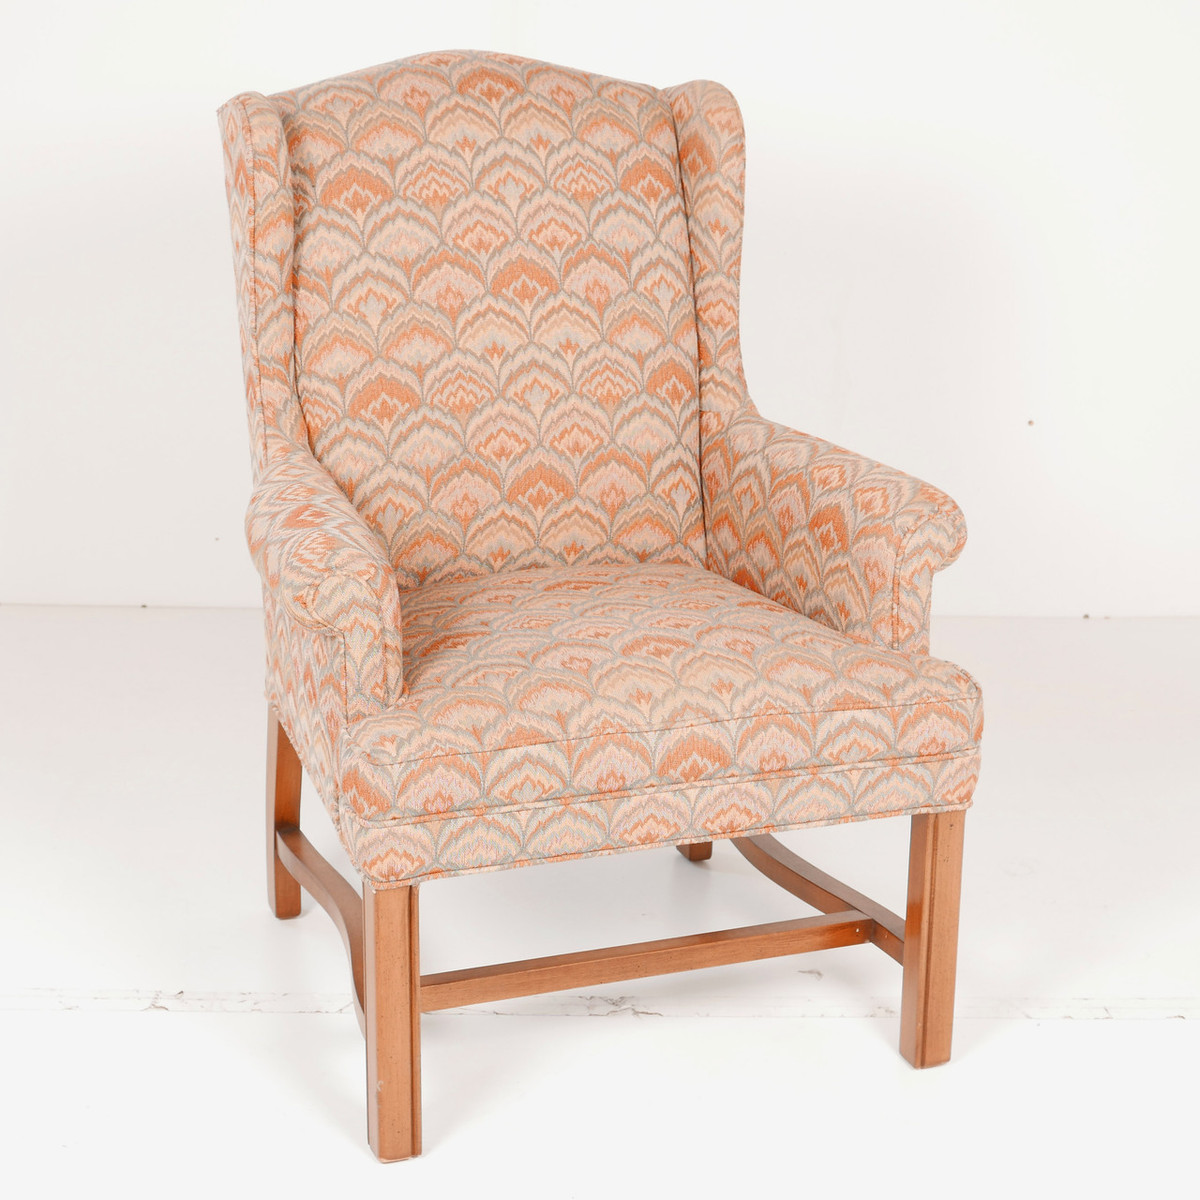 Linen Office Chair Showroom Sample Peach Linen Waiting Room Office Chair